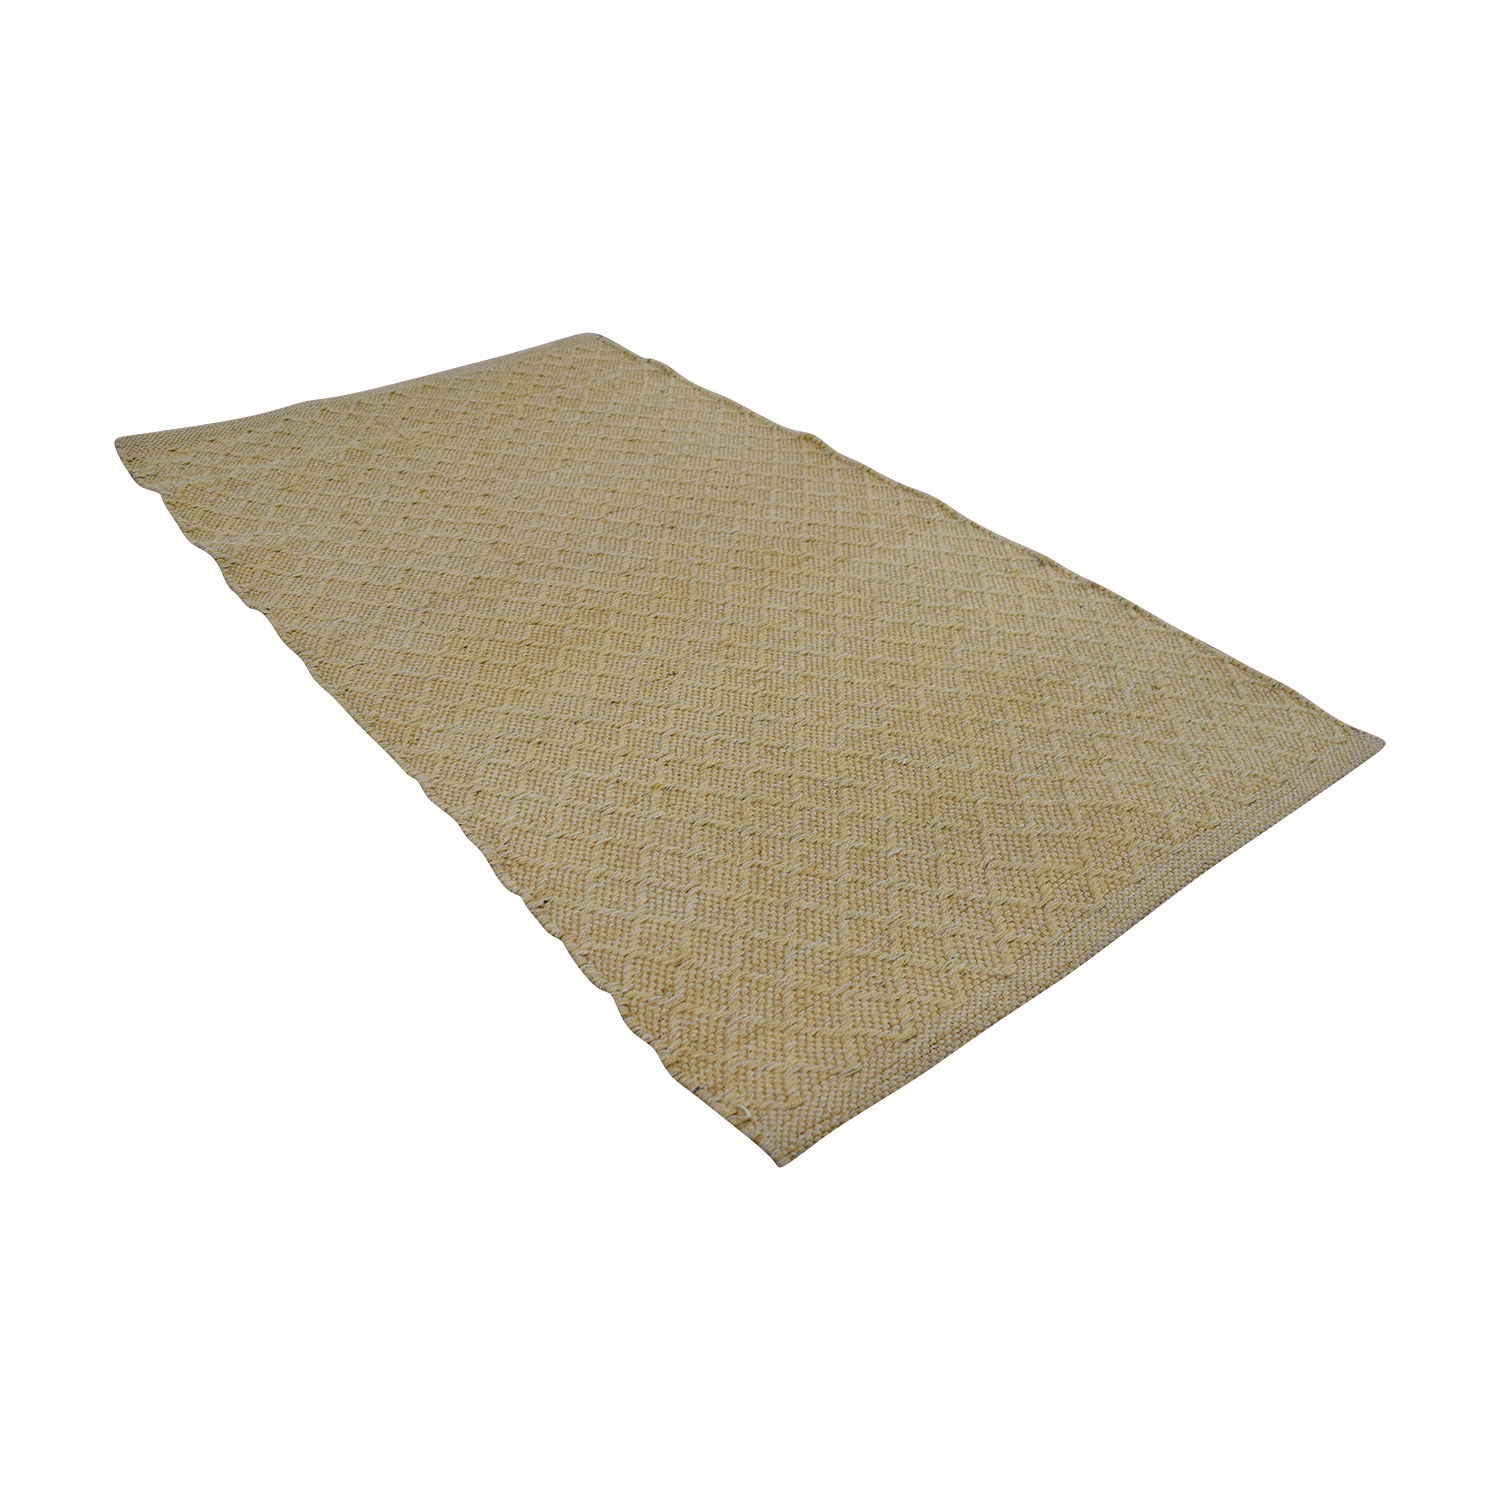 Obeetee Obeetee Beige Rug for sale